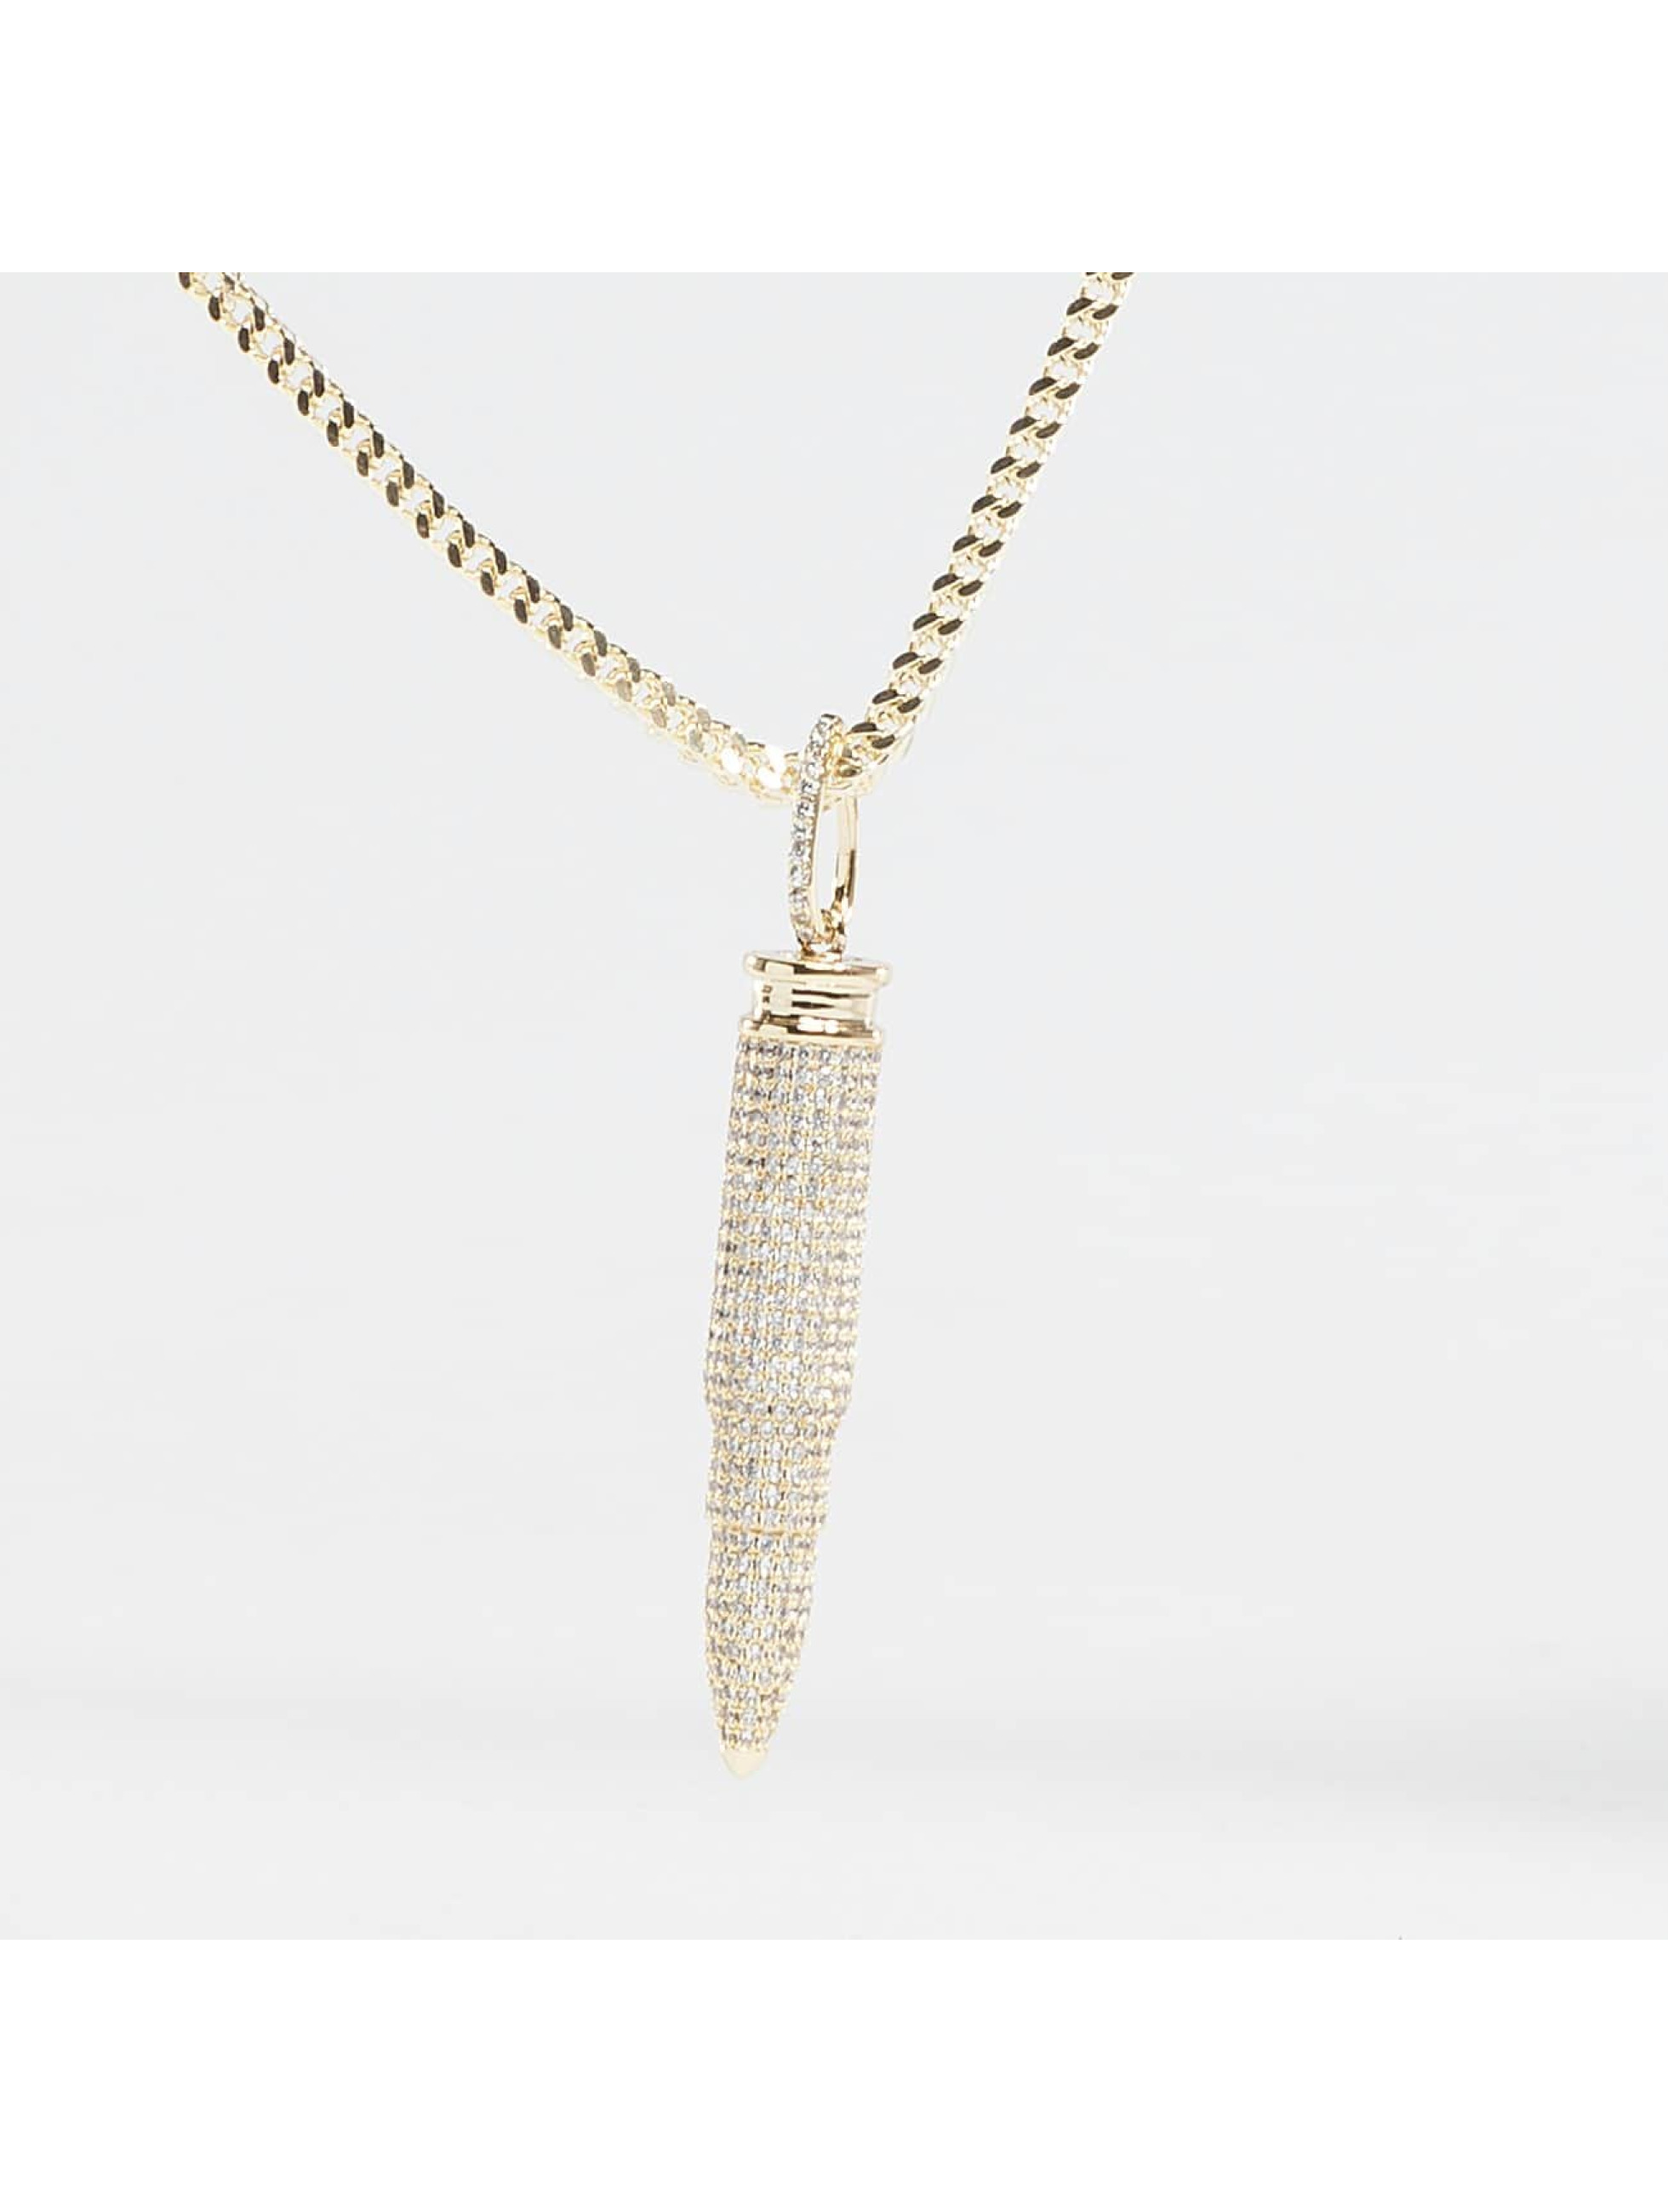 KING ICE Collier Gold_Plated CZ 223 Caliber Bullet or